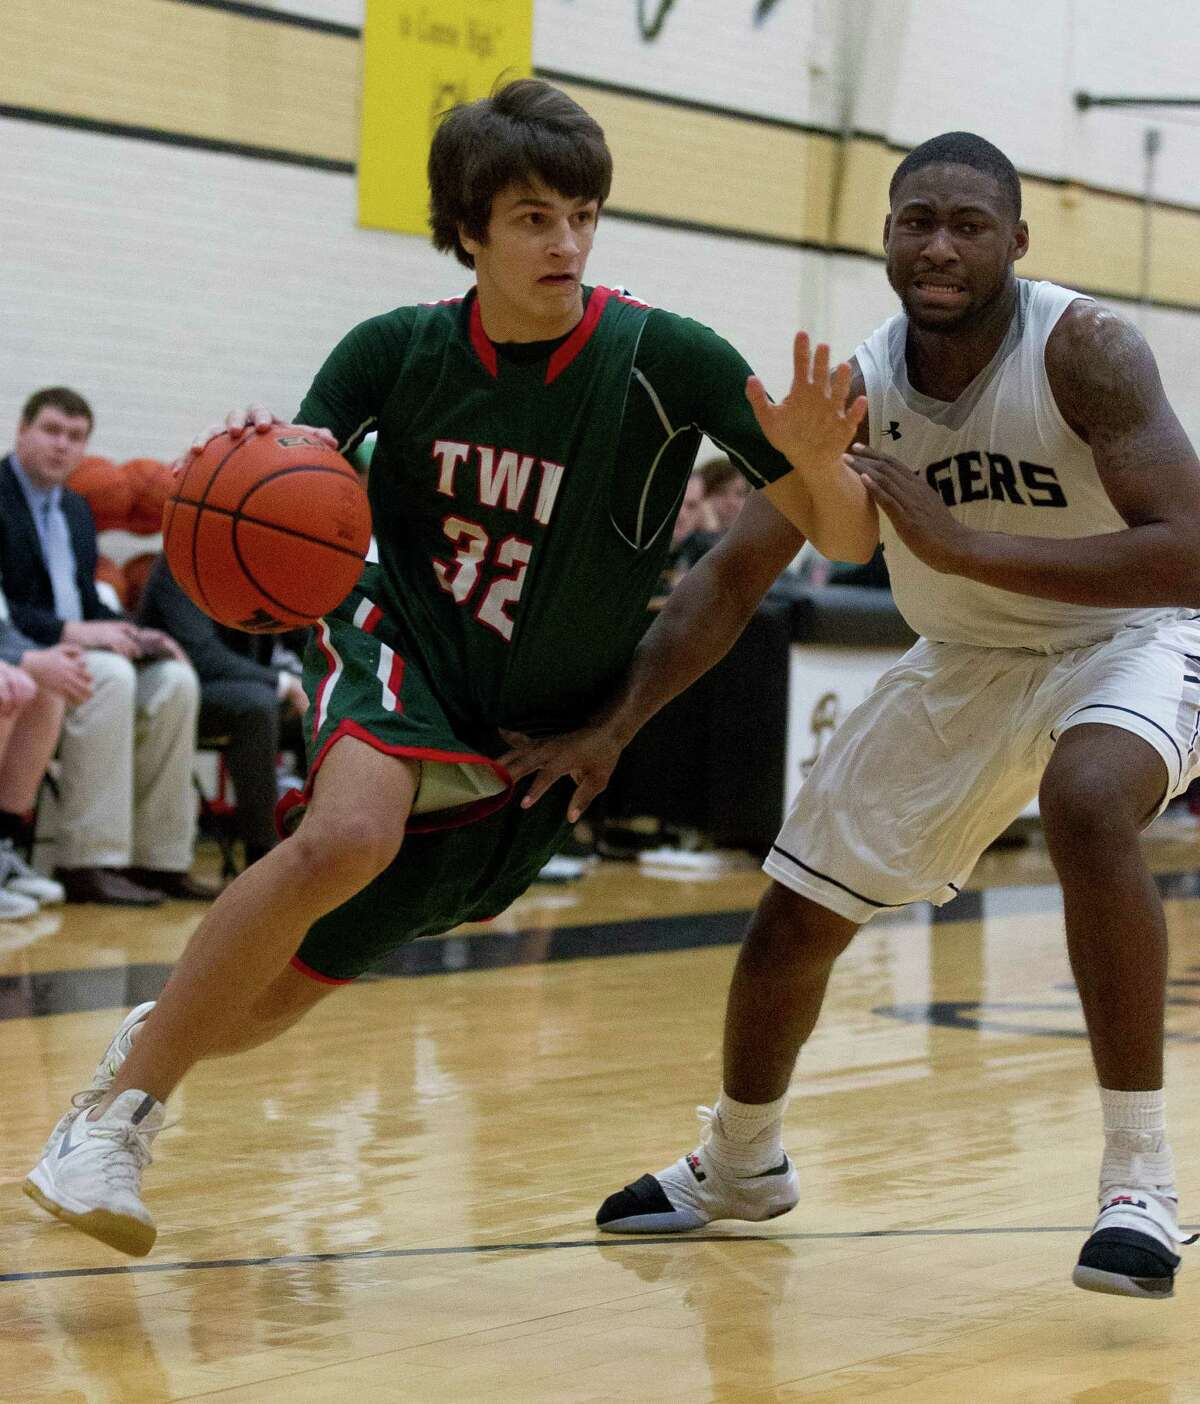 The Woodlands Charlie Zorn (32) drives toward the basket during the first quarter of a District 16-6A high school boys basketball game at Conroe High School Friday, Jan. 20, 2017, in Conroe. Conroe defeated The Woodlands 74-71 in overtime for the Tigers' first win over the Highlanders since 2008.